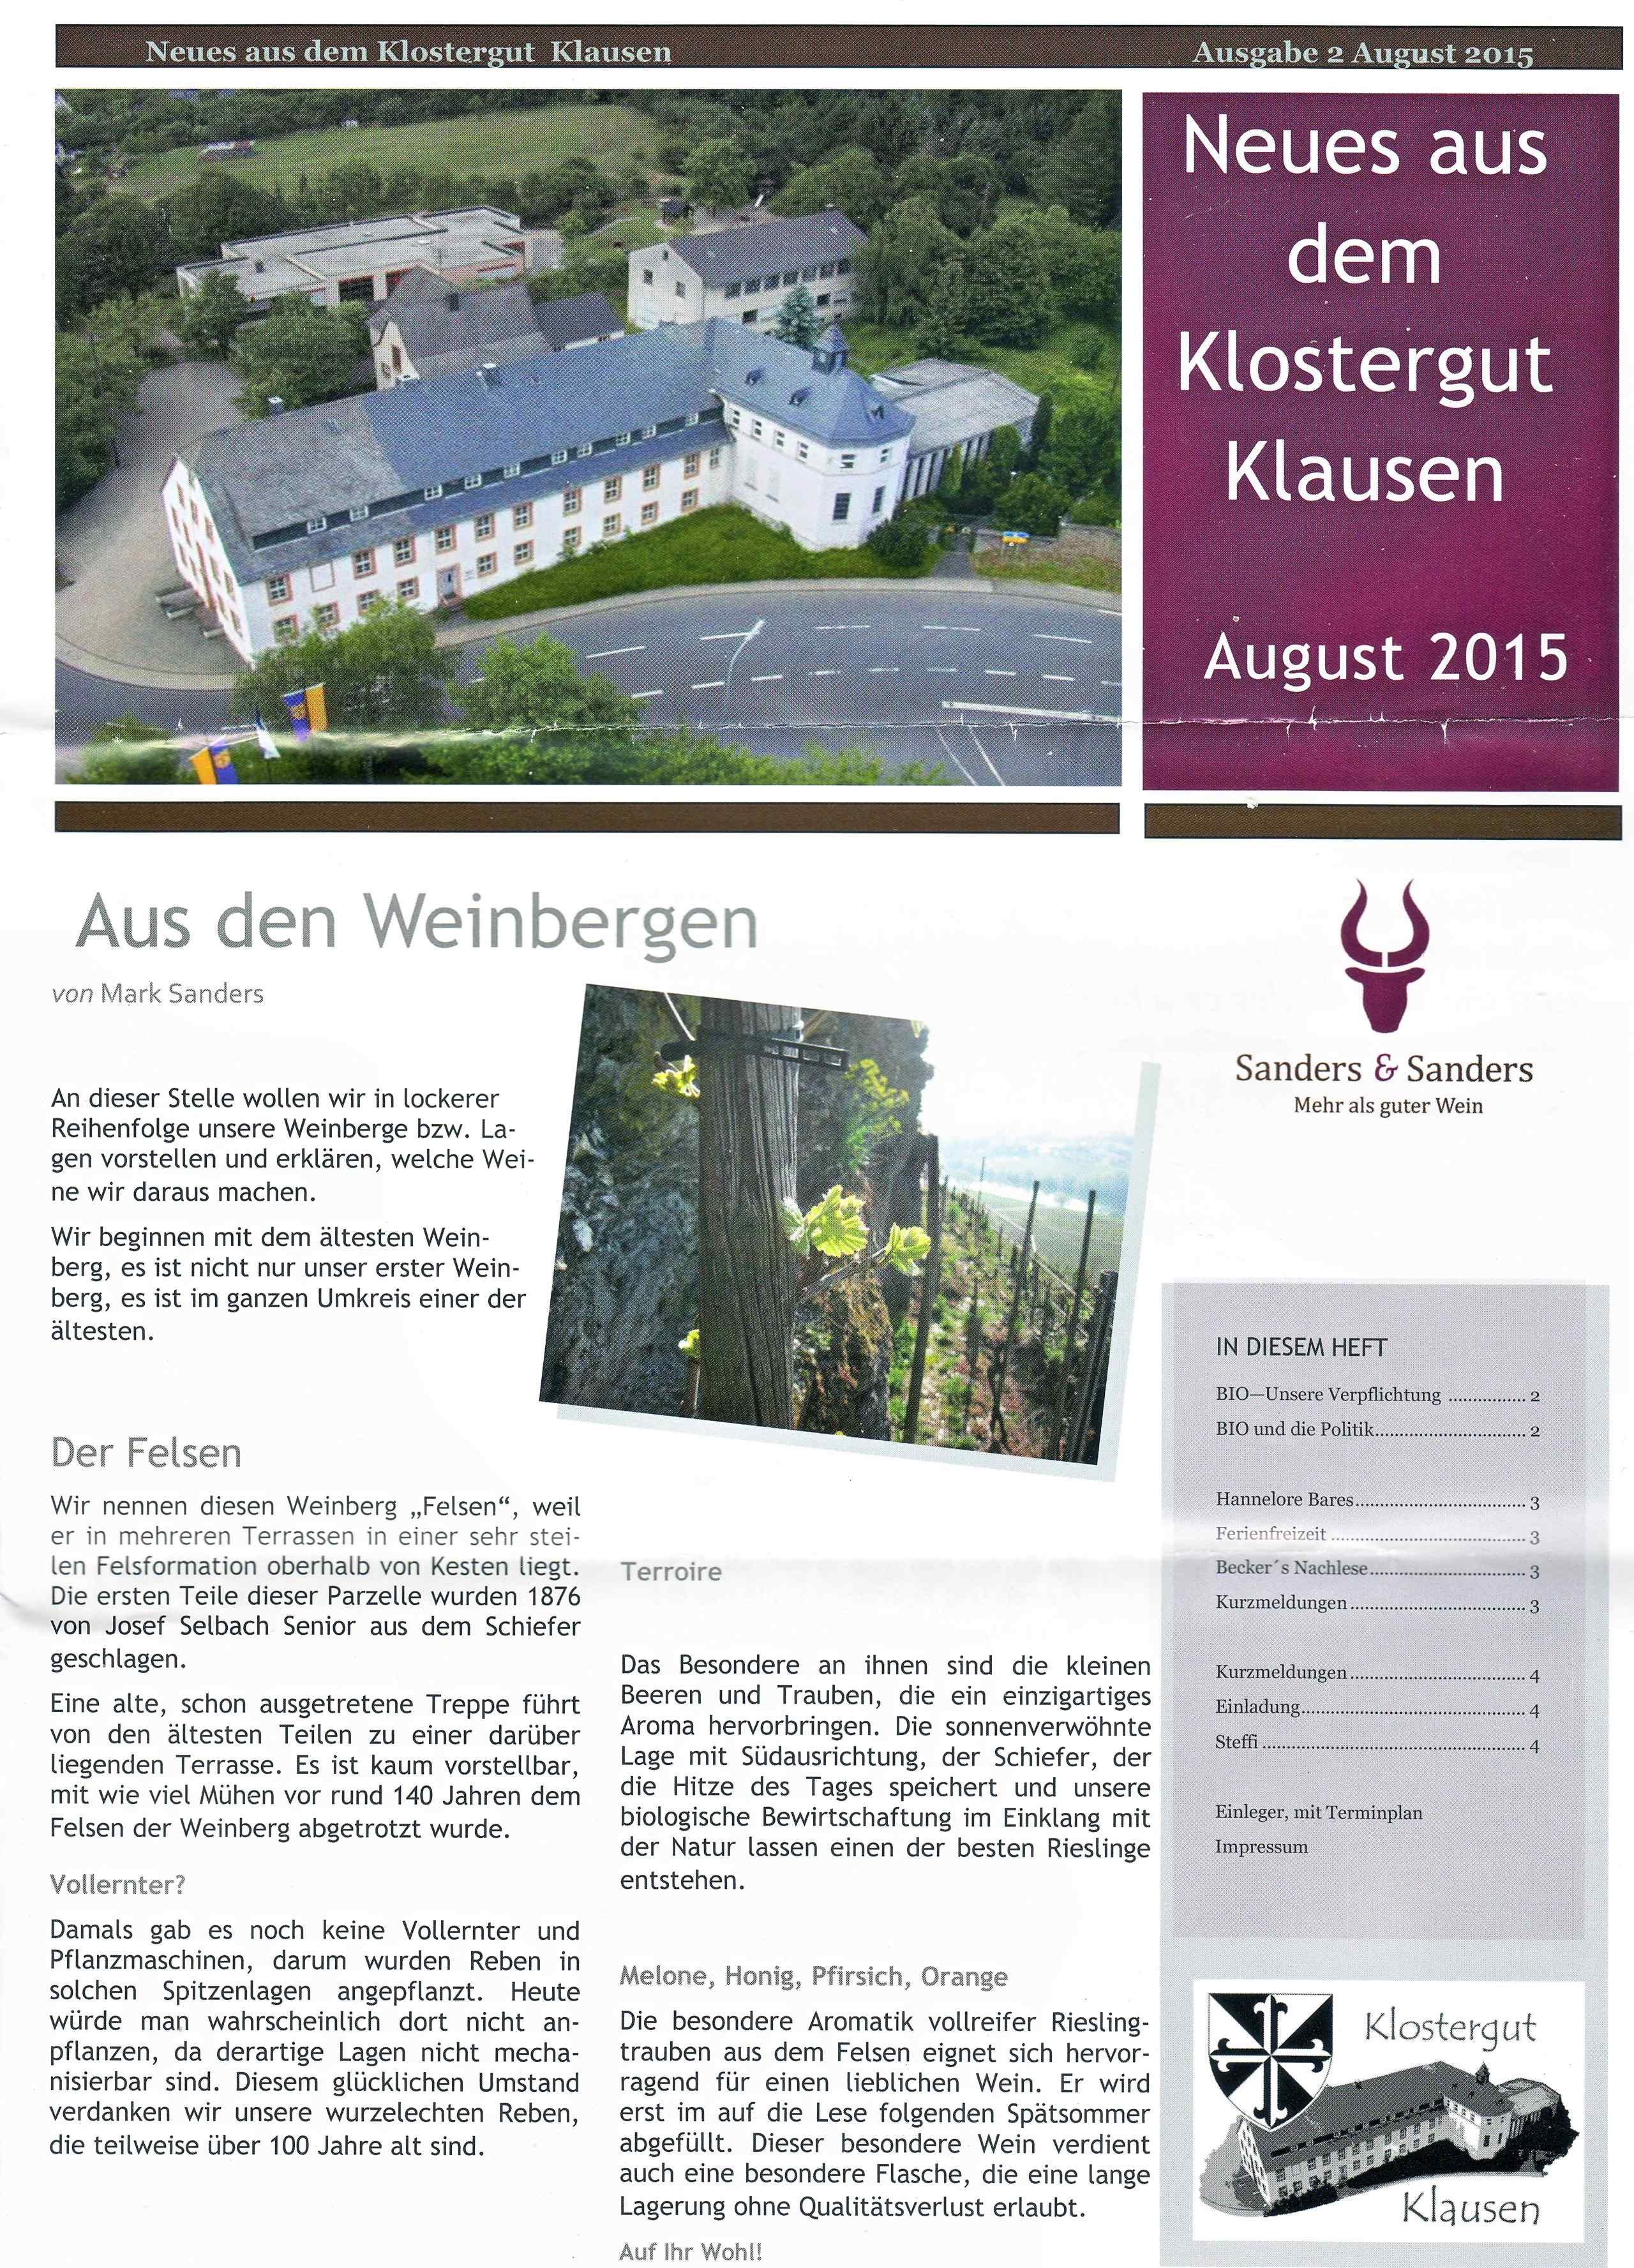 Newsletter August 2015 Klostergut Klausen Saders & Sanders